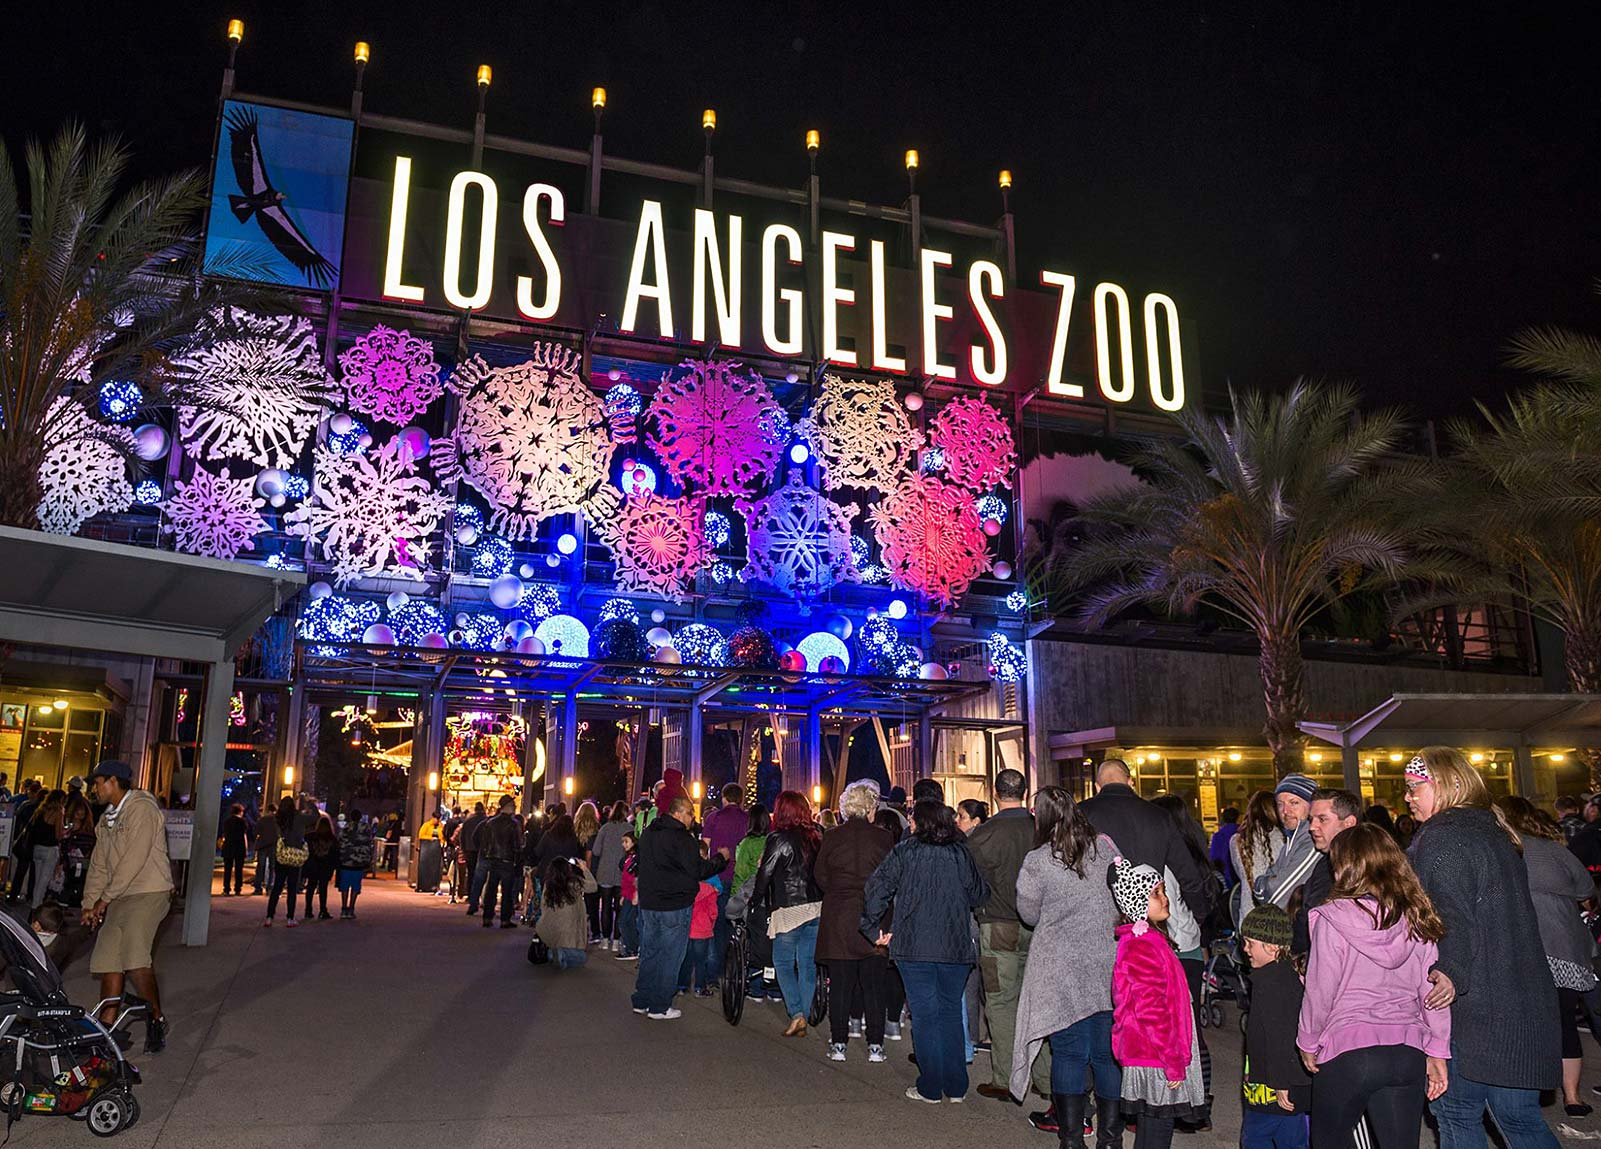 Los Angeles Zoo Discount Tickets To Los Angeles Zoo